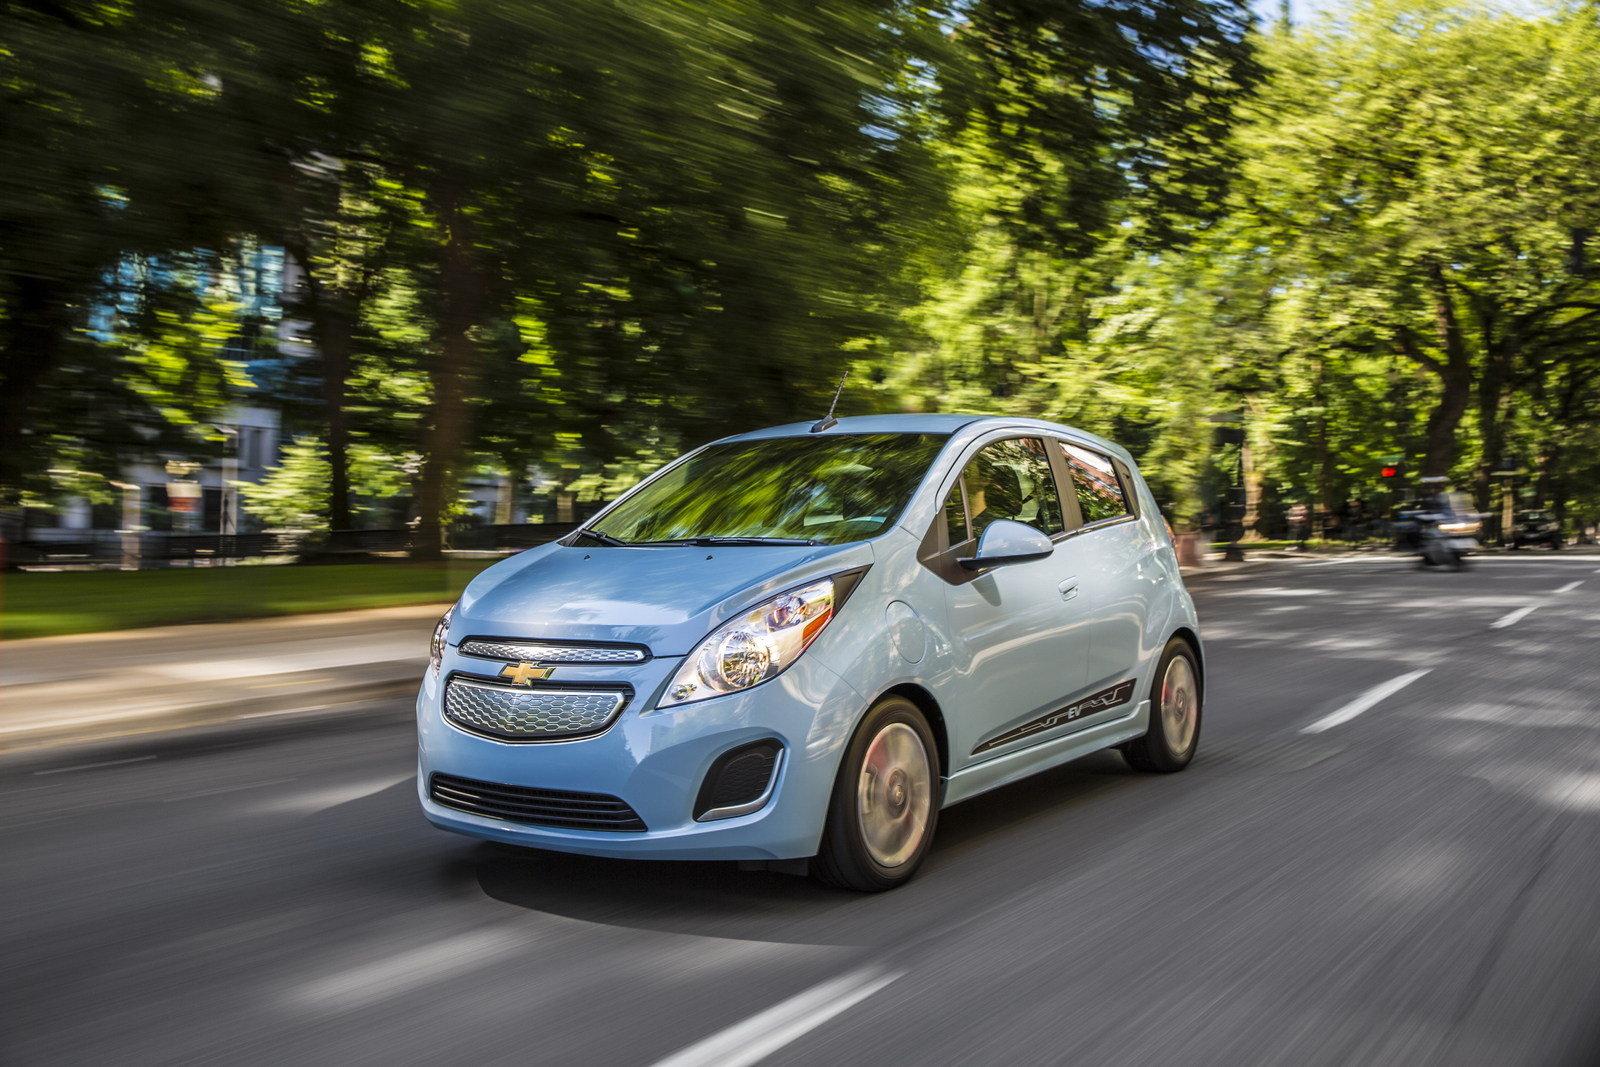 2014 chevrolet spark ev picture 648711 car review top speed. Cars Review. Best American Auto & Cars Review